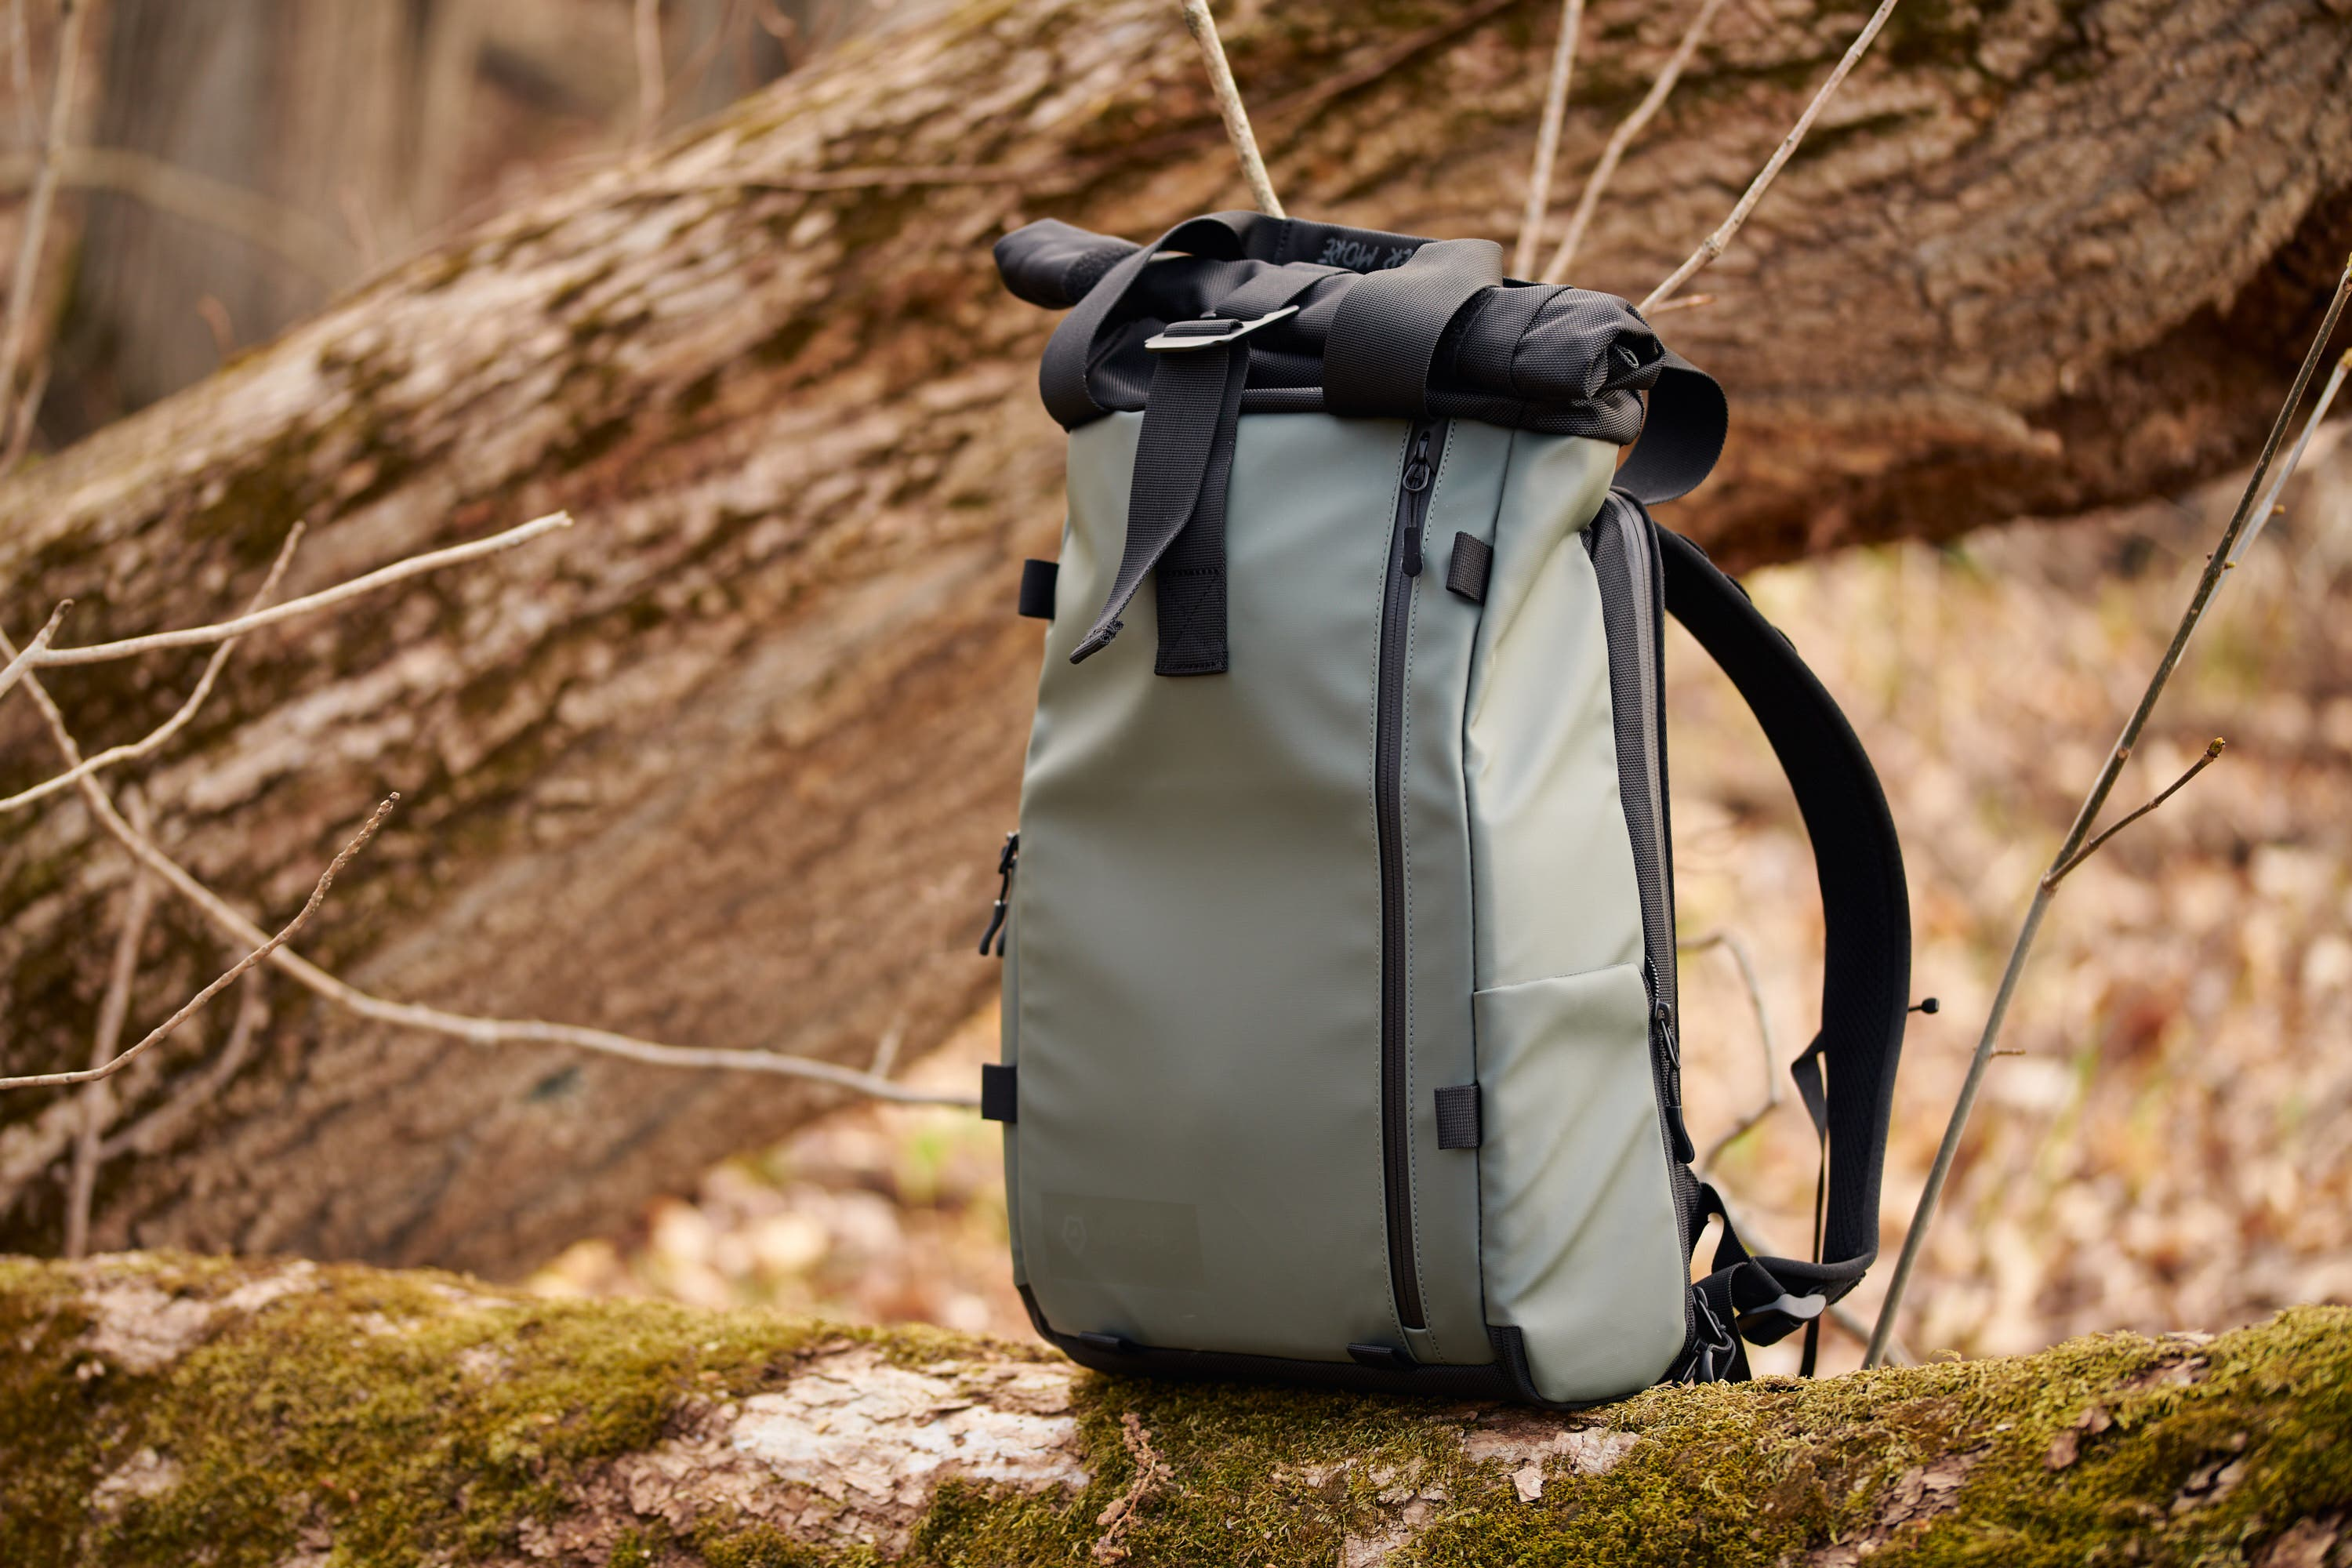 This Beautiful Little Bag Packs Big Comfort: Wandrd PRVKE Lite Review